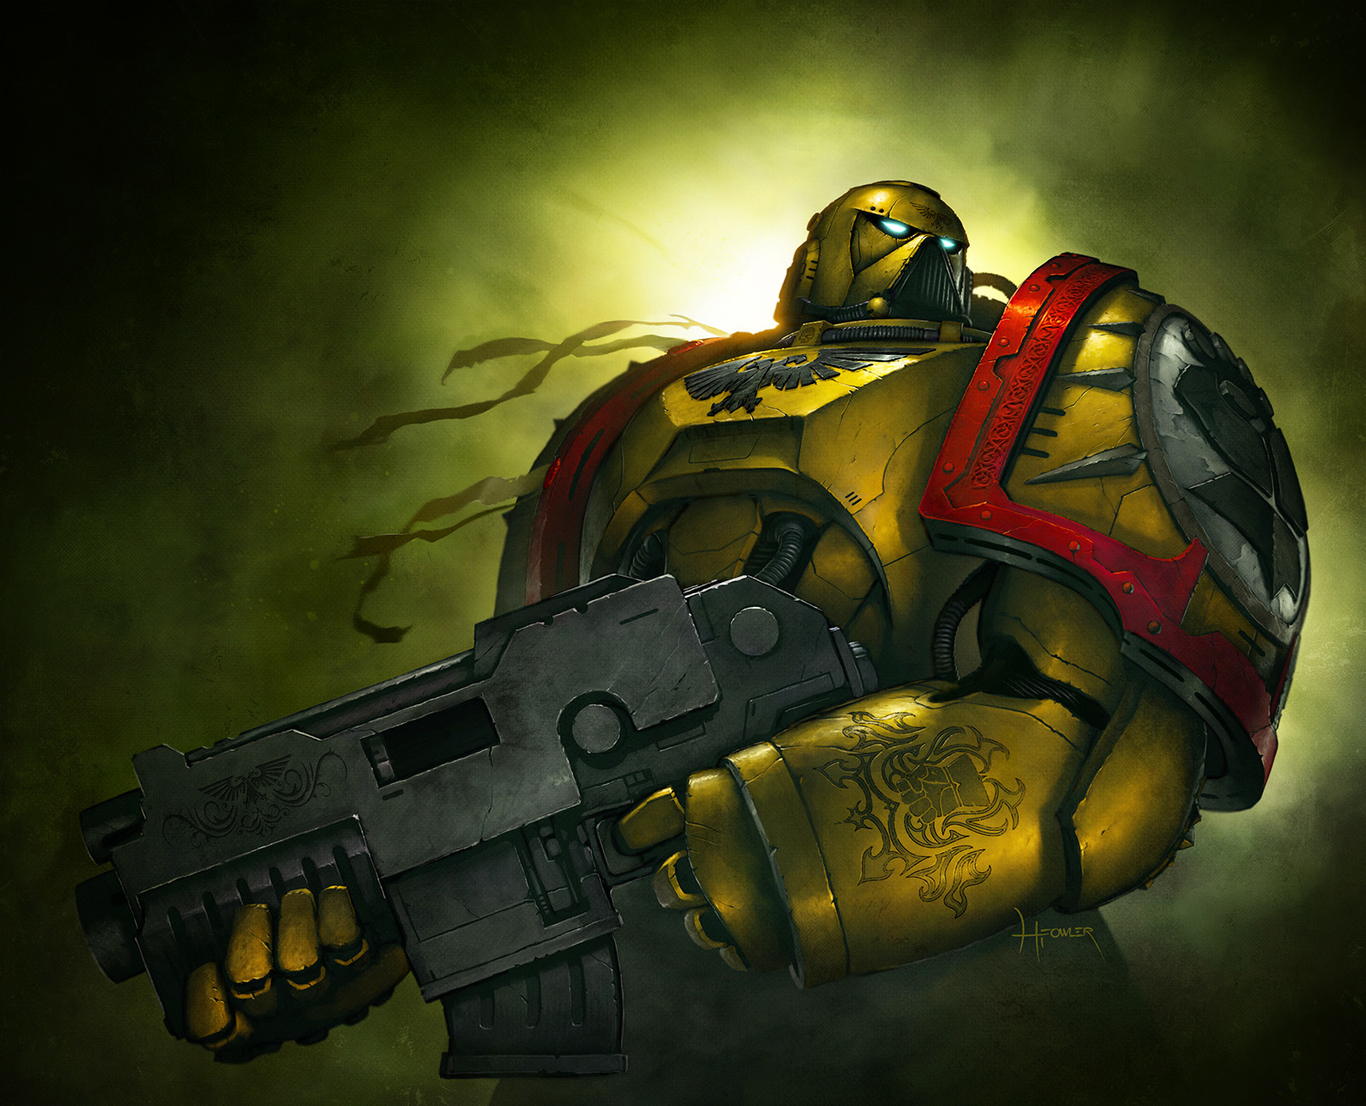 Fowlerillus warhammer 40k there  1 077e8883 eob8